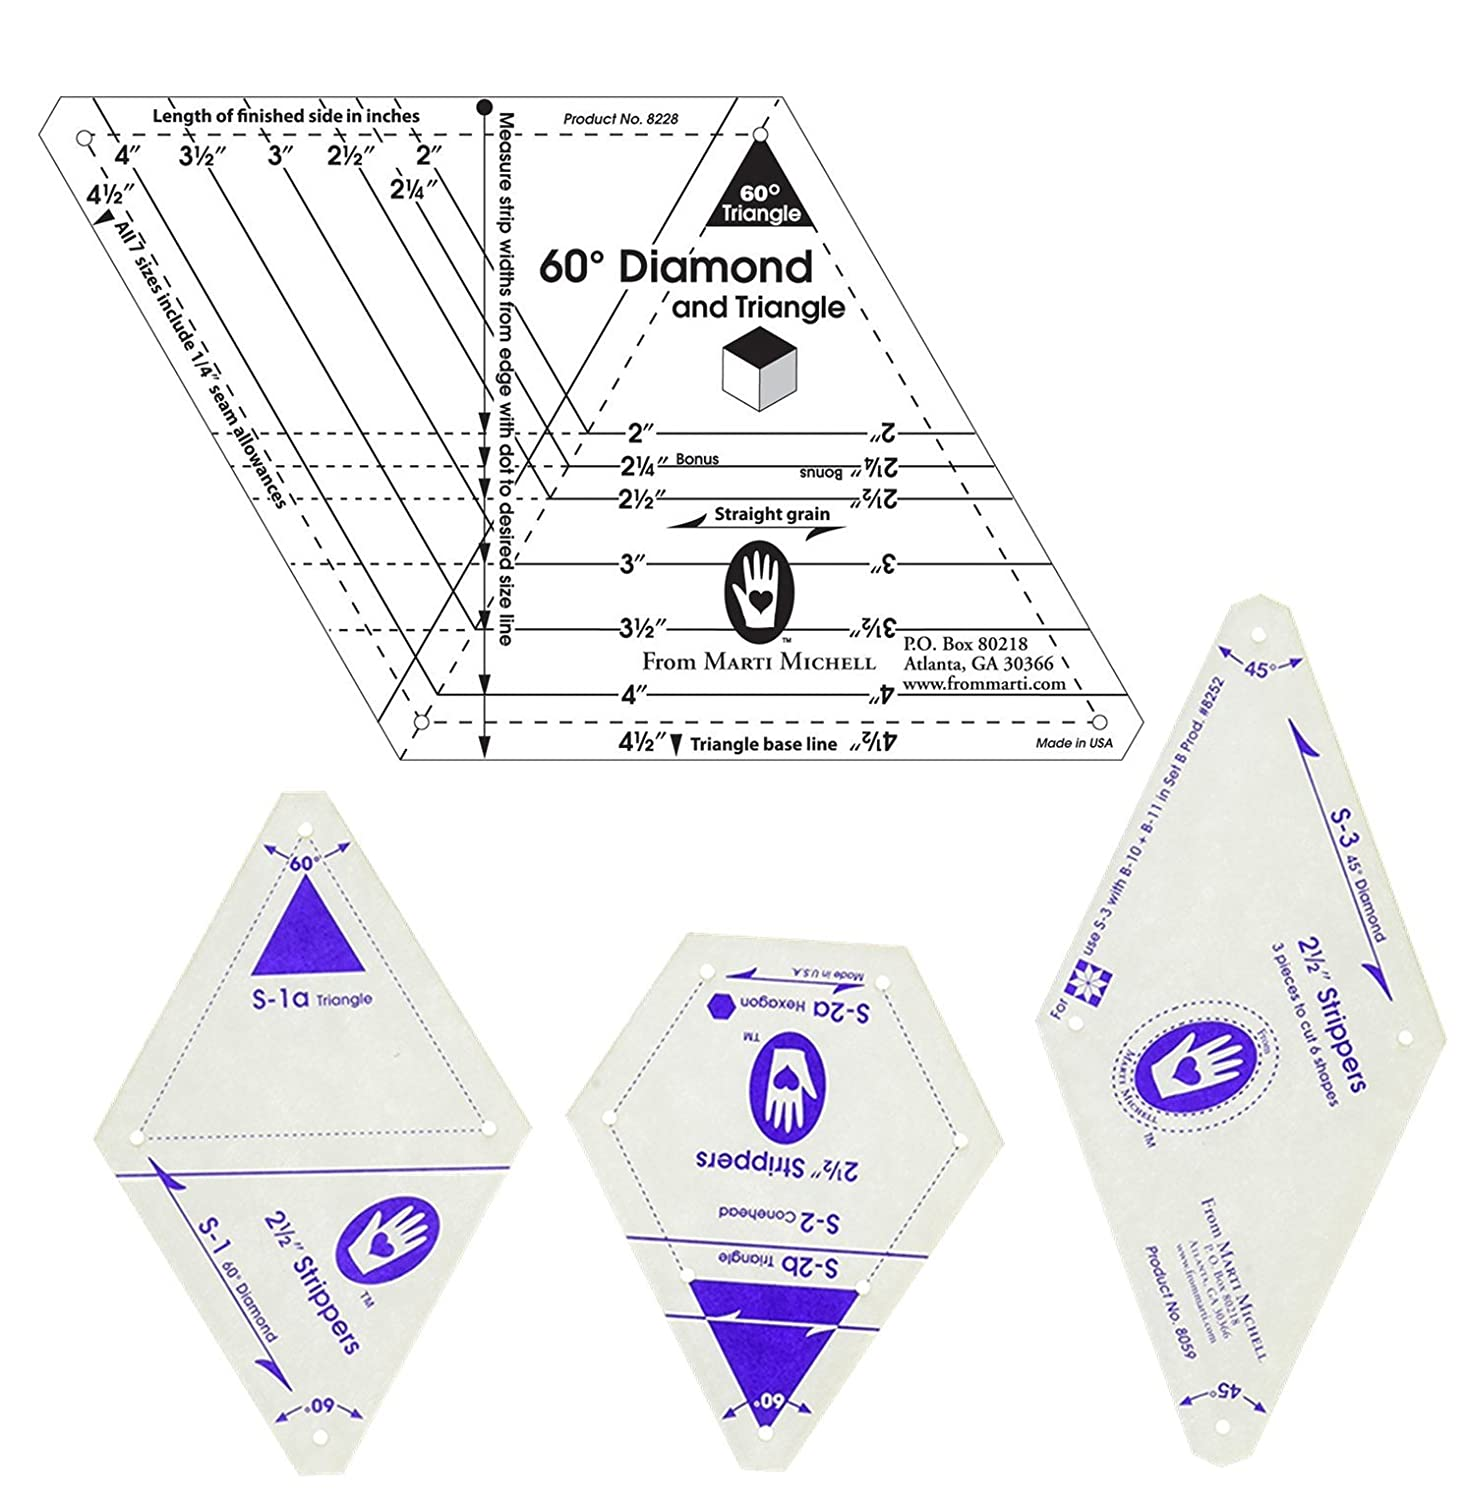 Marti Michell Quilting Templates Bundle - 2 Items: 2 ½-Inch Strippers Templates and One-Derful One Patch 60-Degree Diamond and Triangle Template